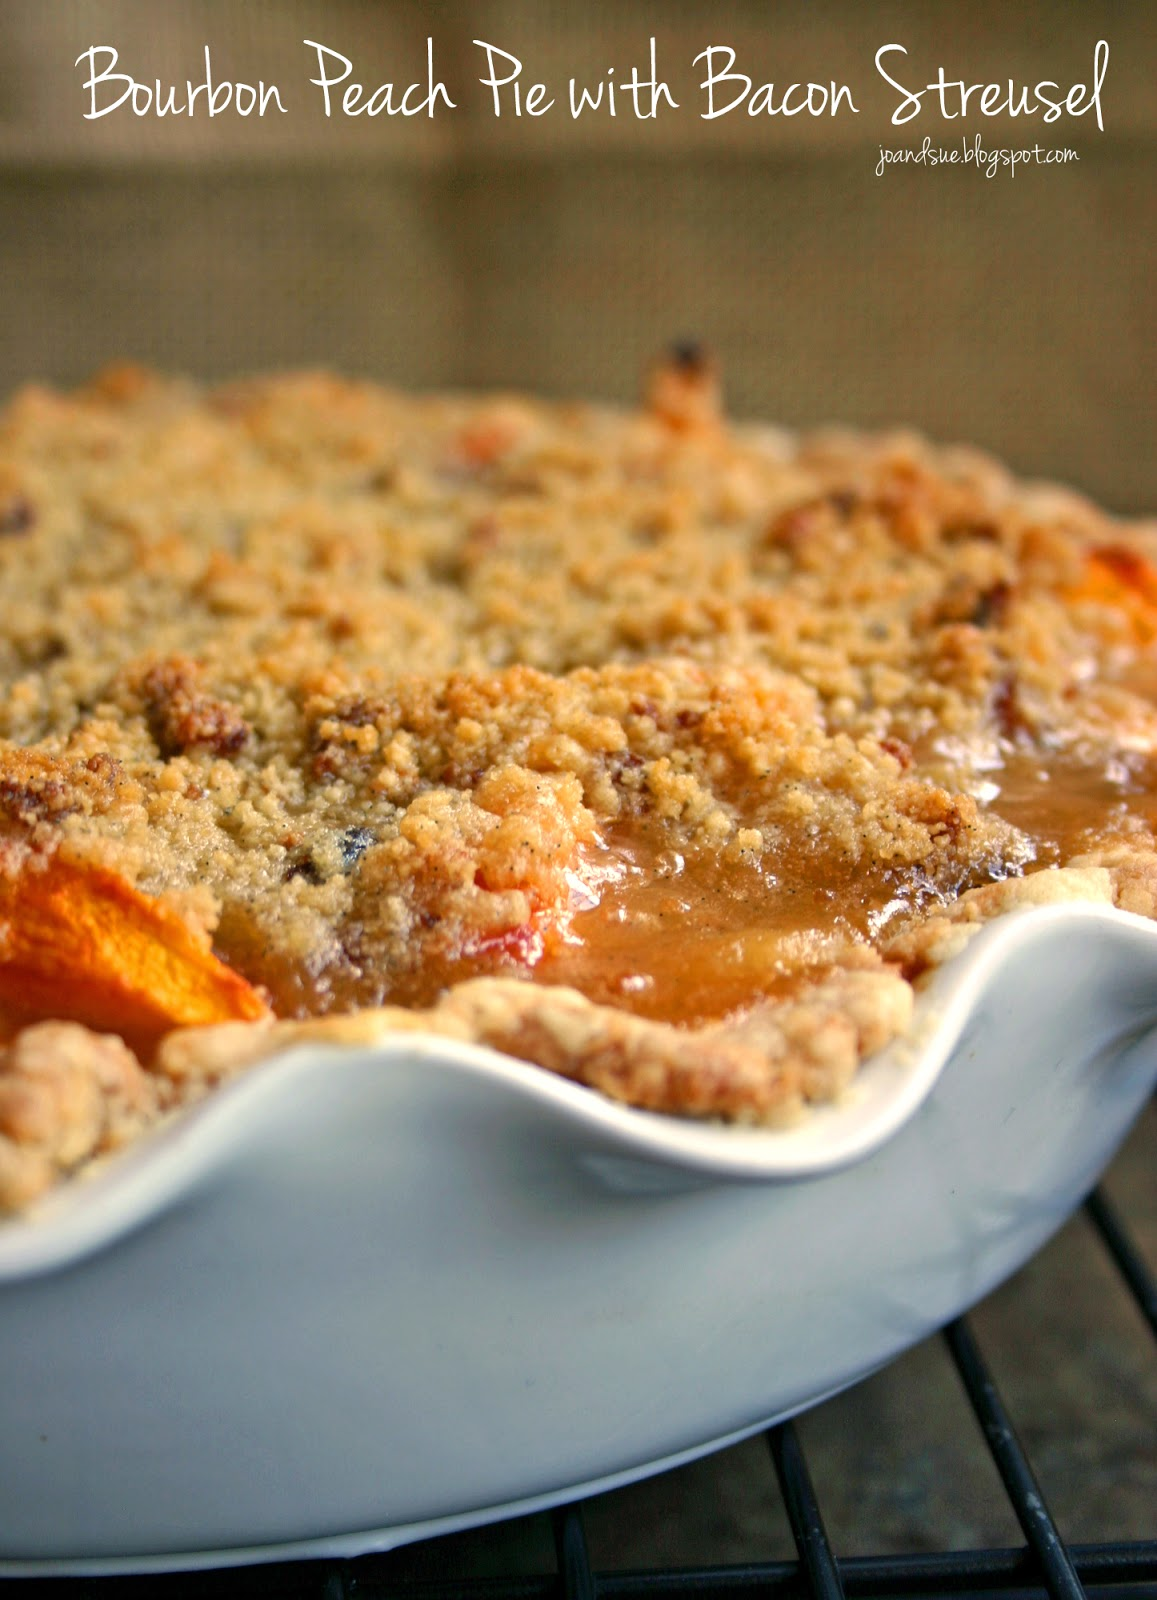 Jo and Sue: Bourbon Peach Pie With Bacon Streusel